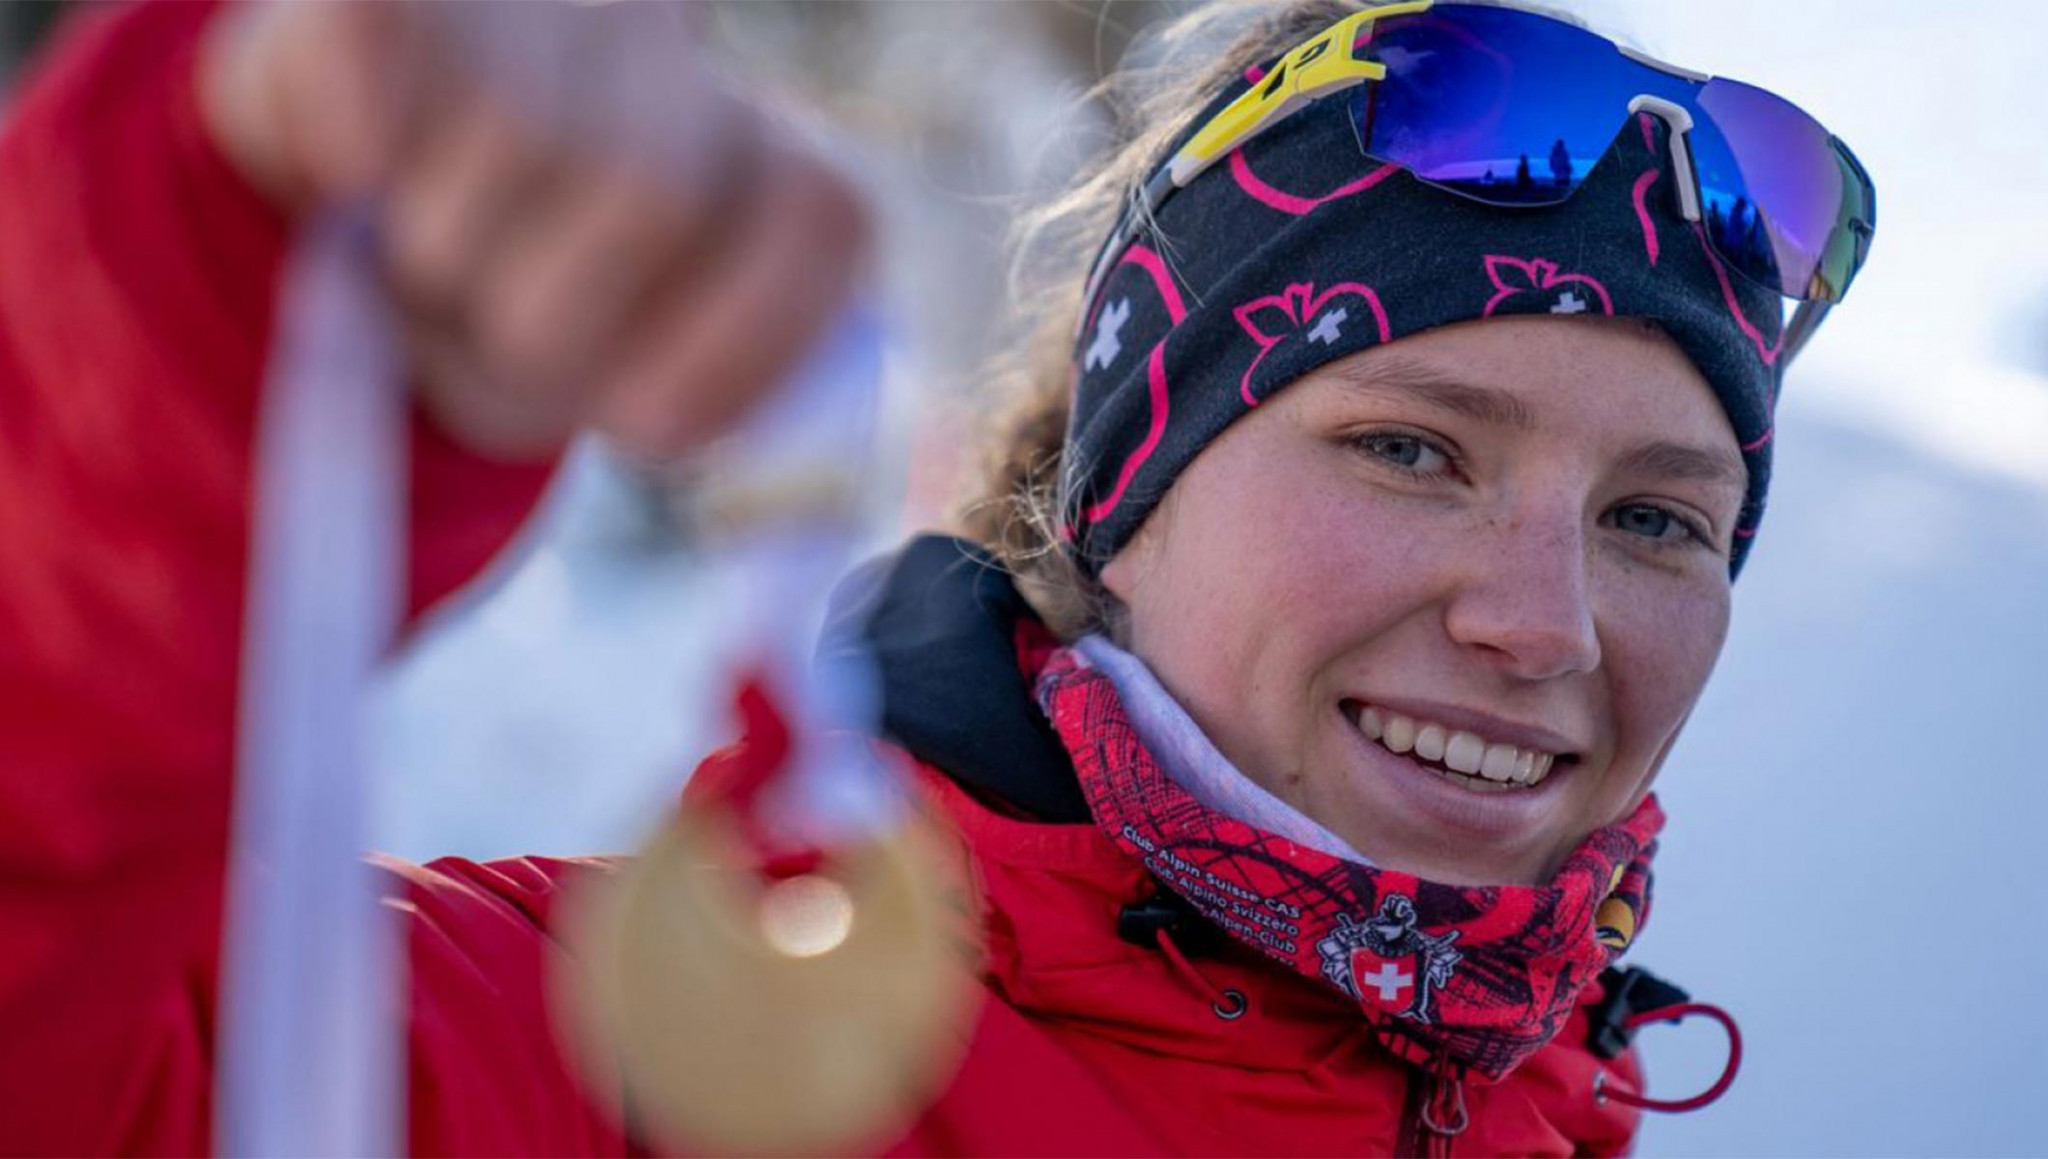 Thibe Deseyn is relishing competing in ski mountaineering at Lausanne 2020 ©IOC